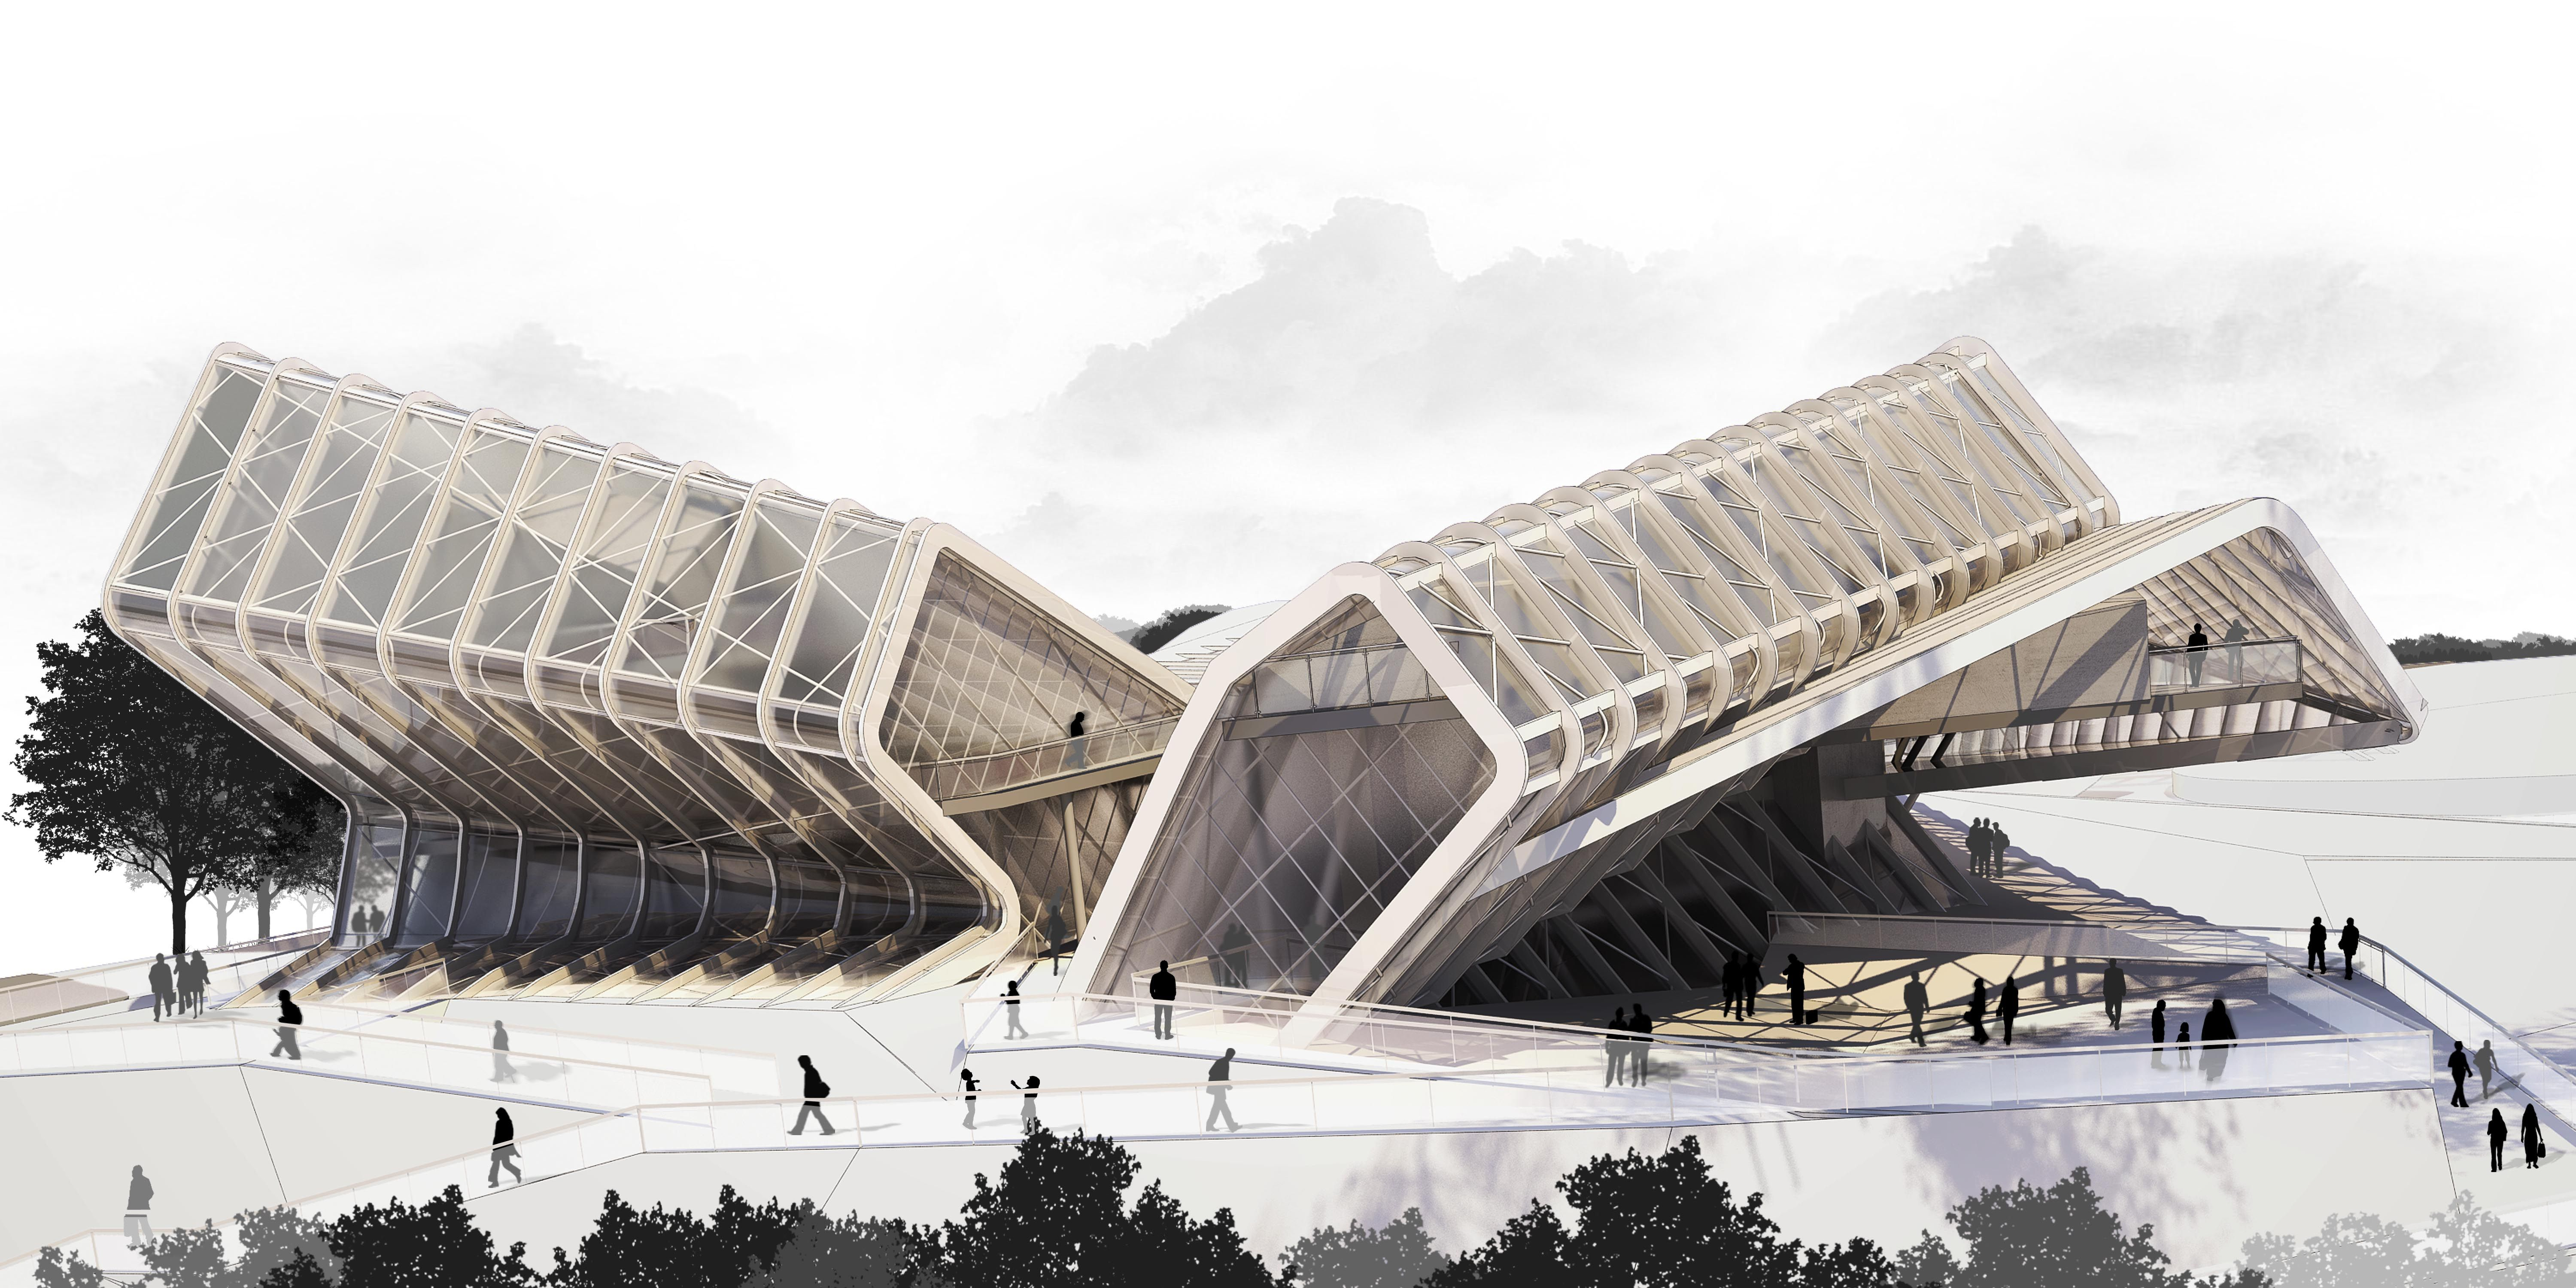 Gallery of media complex caat studio architecture 25 for Art architectural